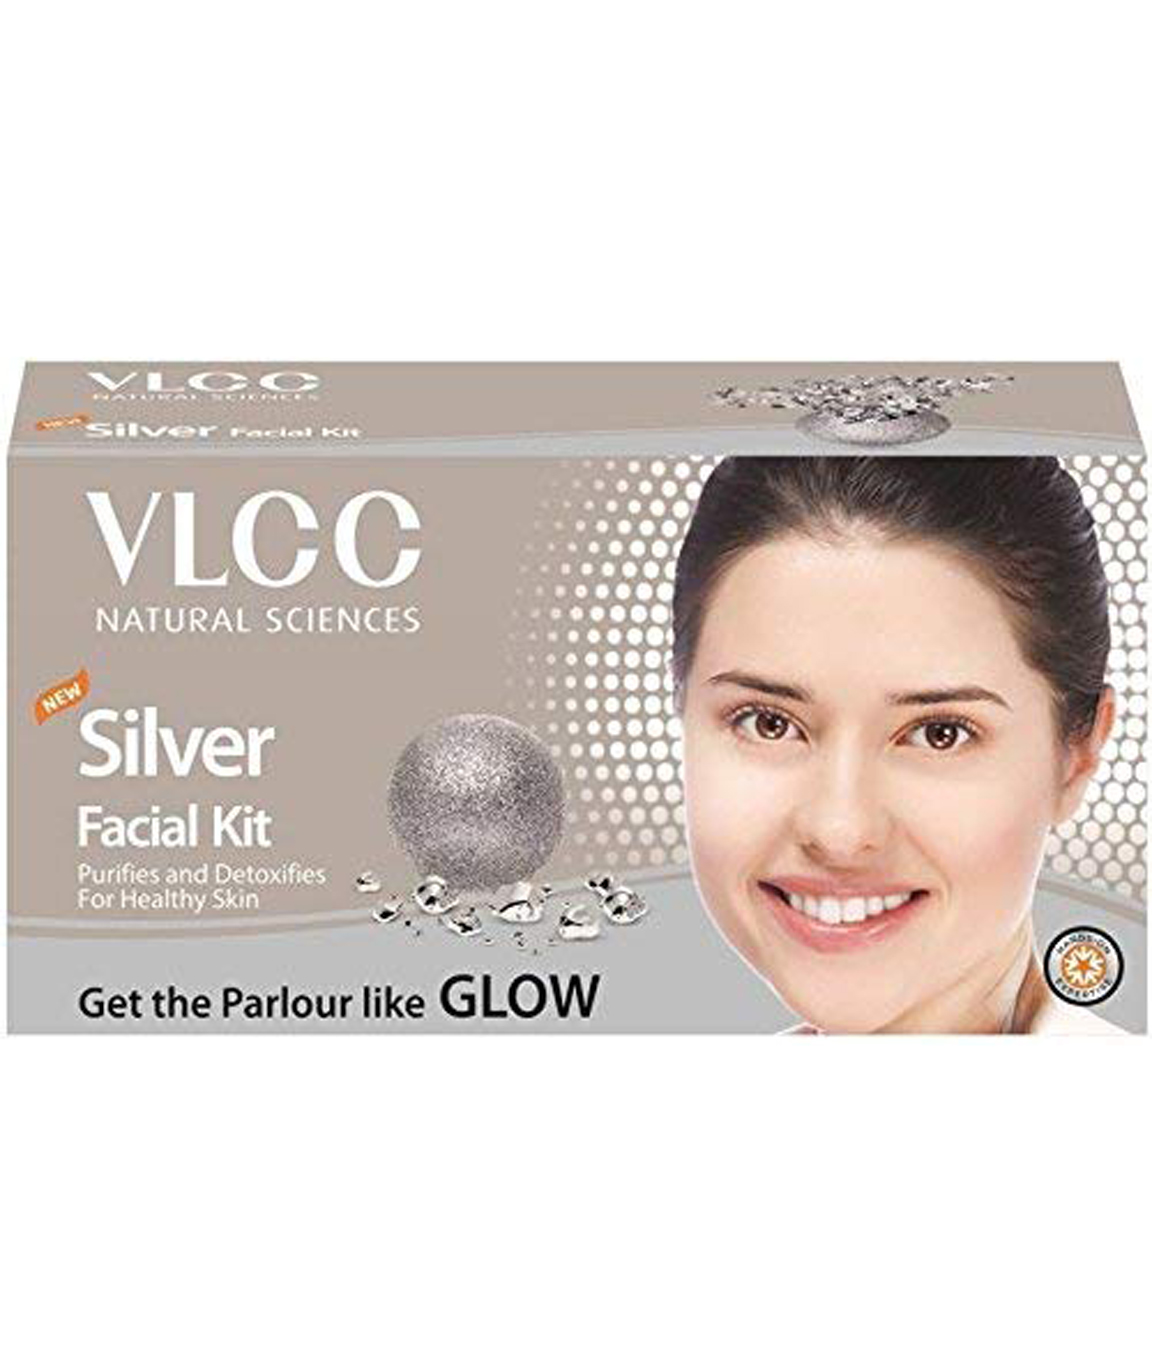 VLCC Natural Sciences Silver Facial Kit 60 g